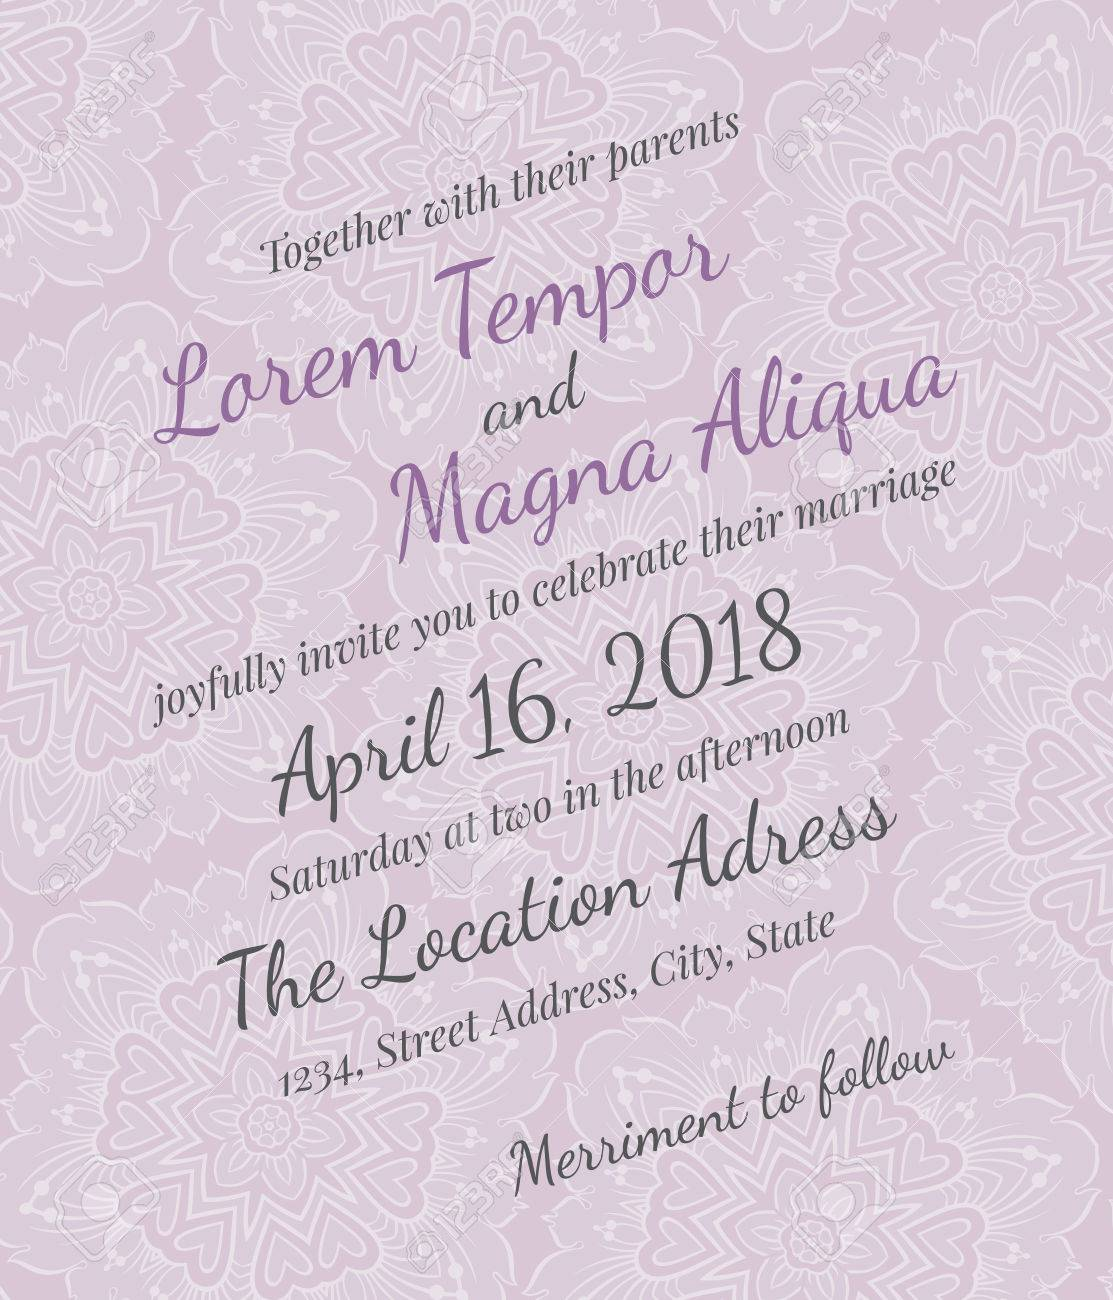 Invitation Wedding Vector Lace Template - For Invitations, Flyers ...